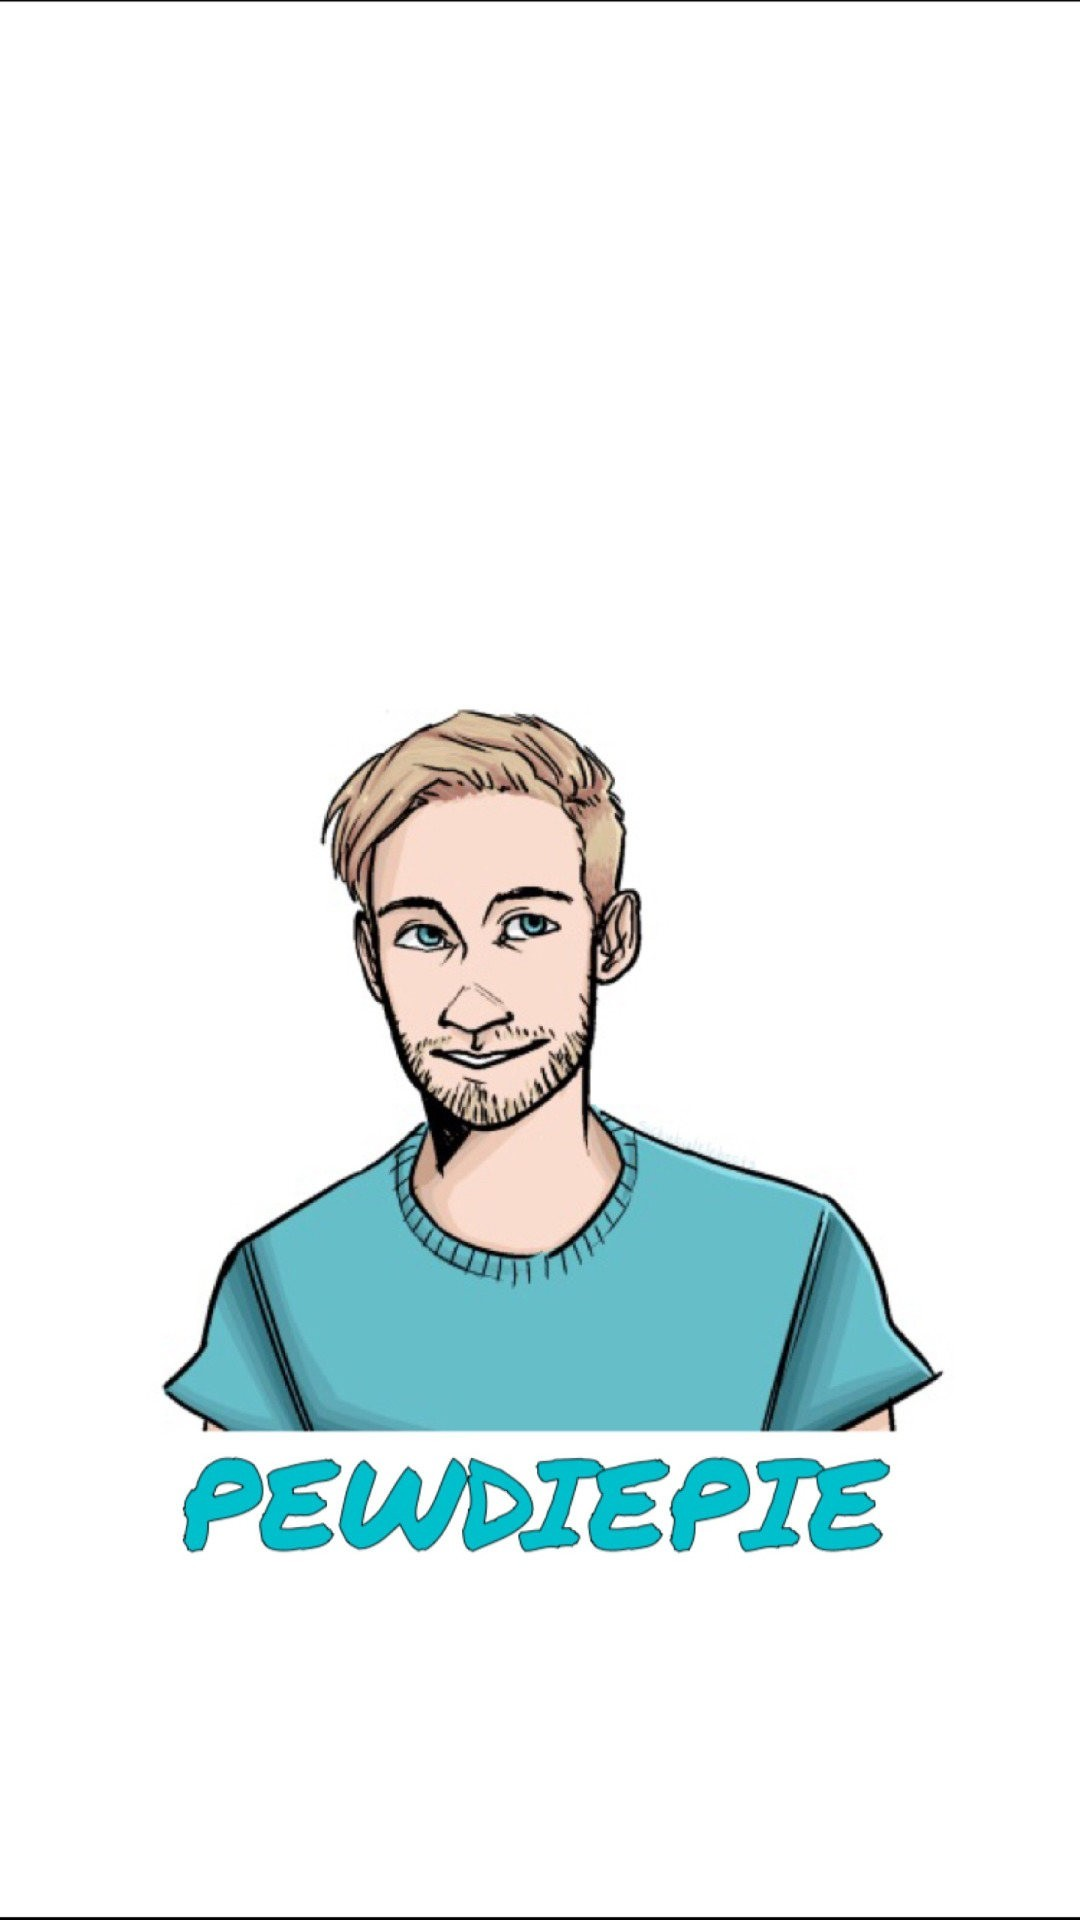 Pewdiepie Hd Wallpapers For Iphone 7 Wallpapers Pictures